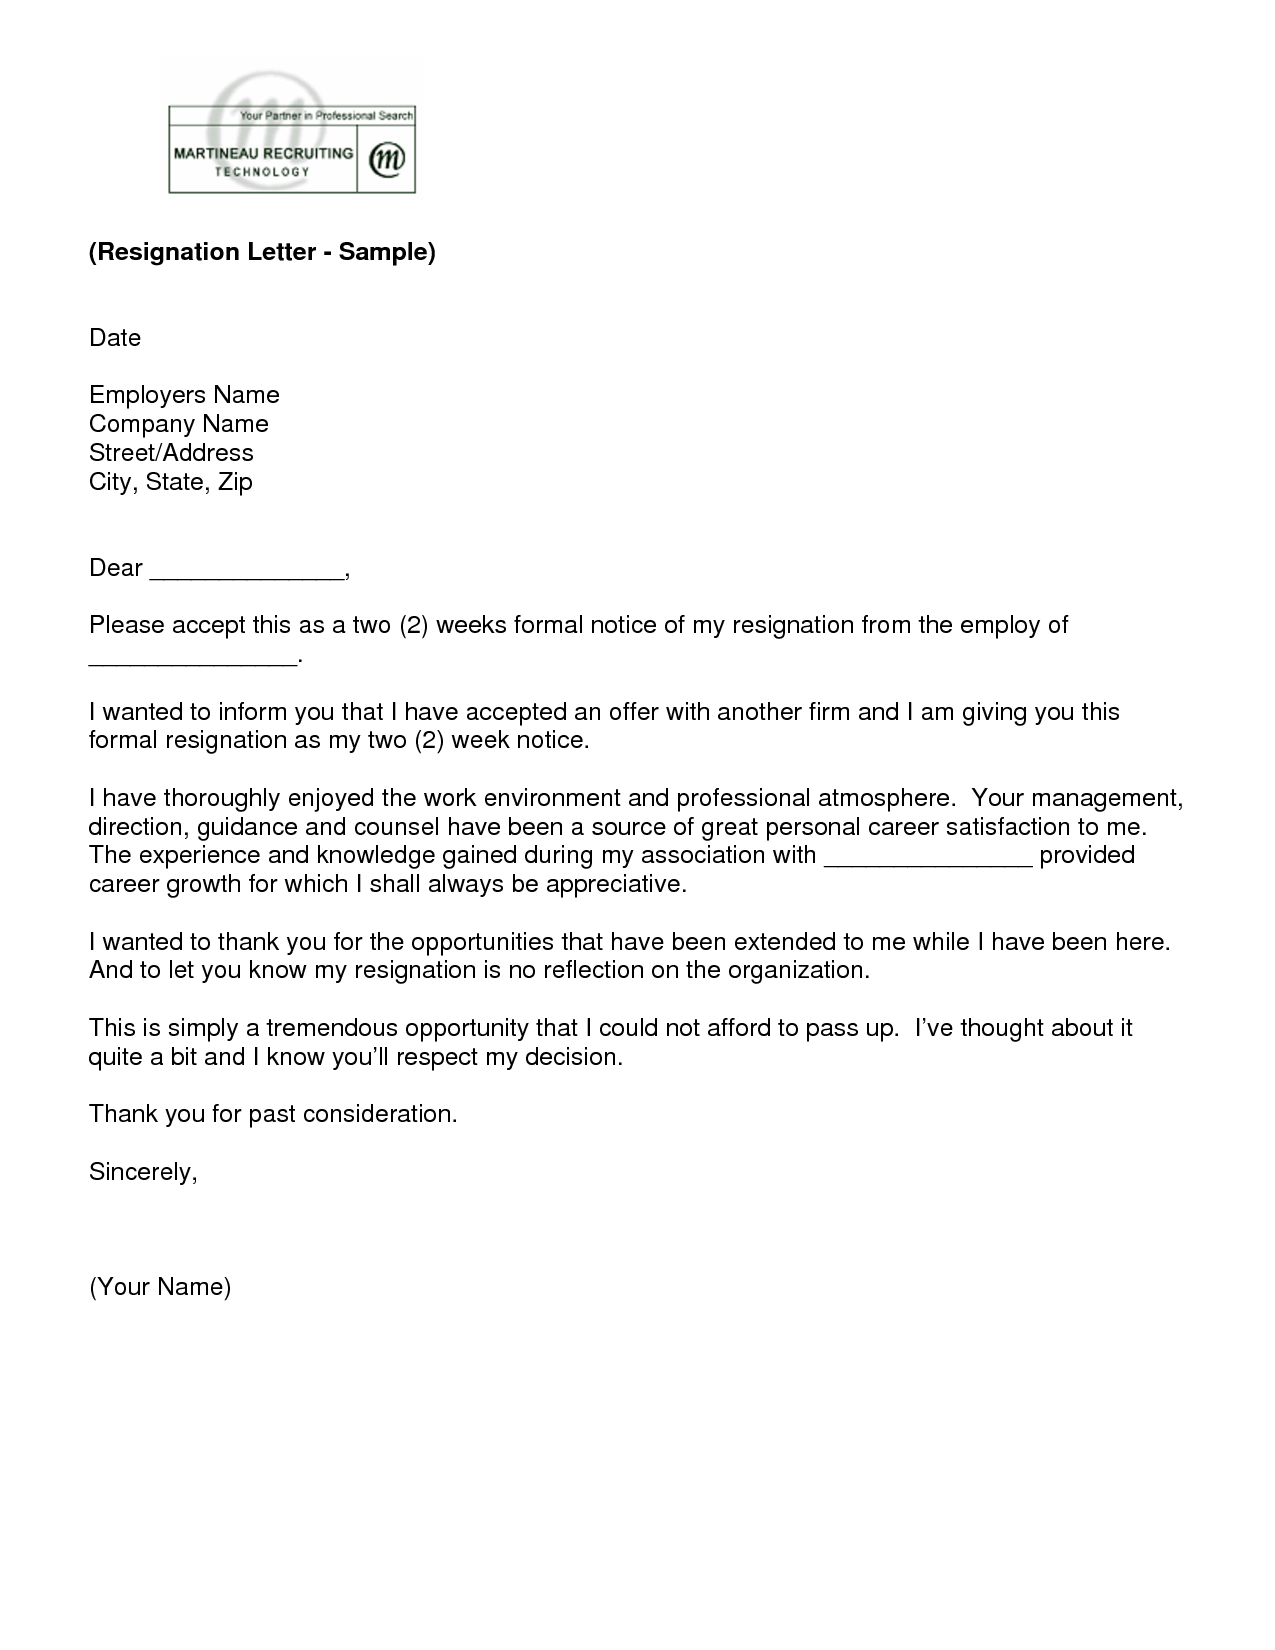 One week notice resignation letter romeondinez one week notice resignation letter spiritdancerdesigns